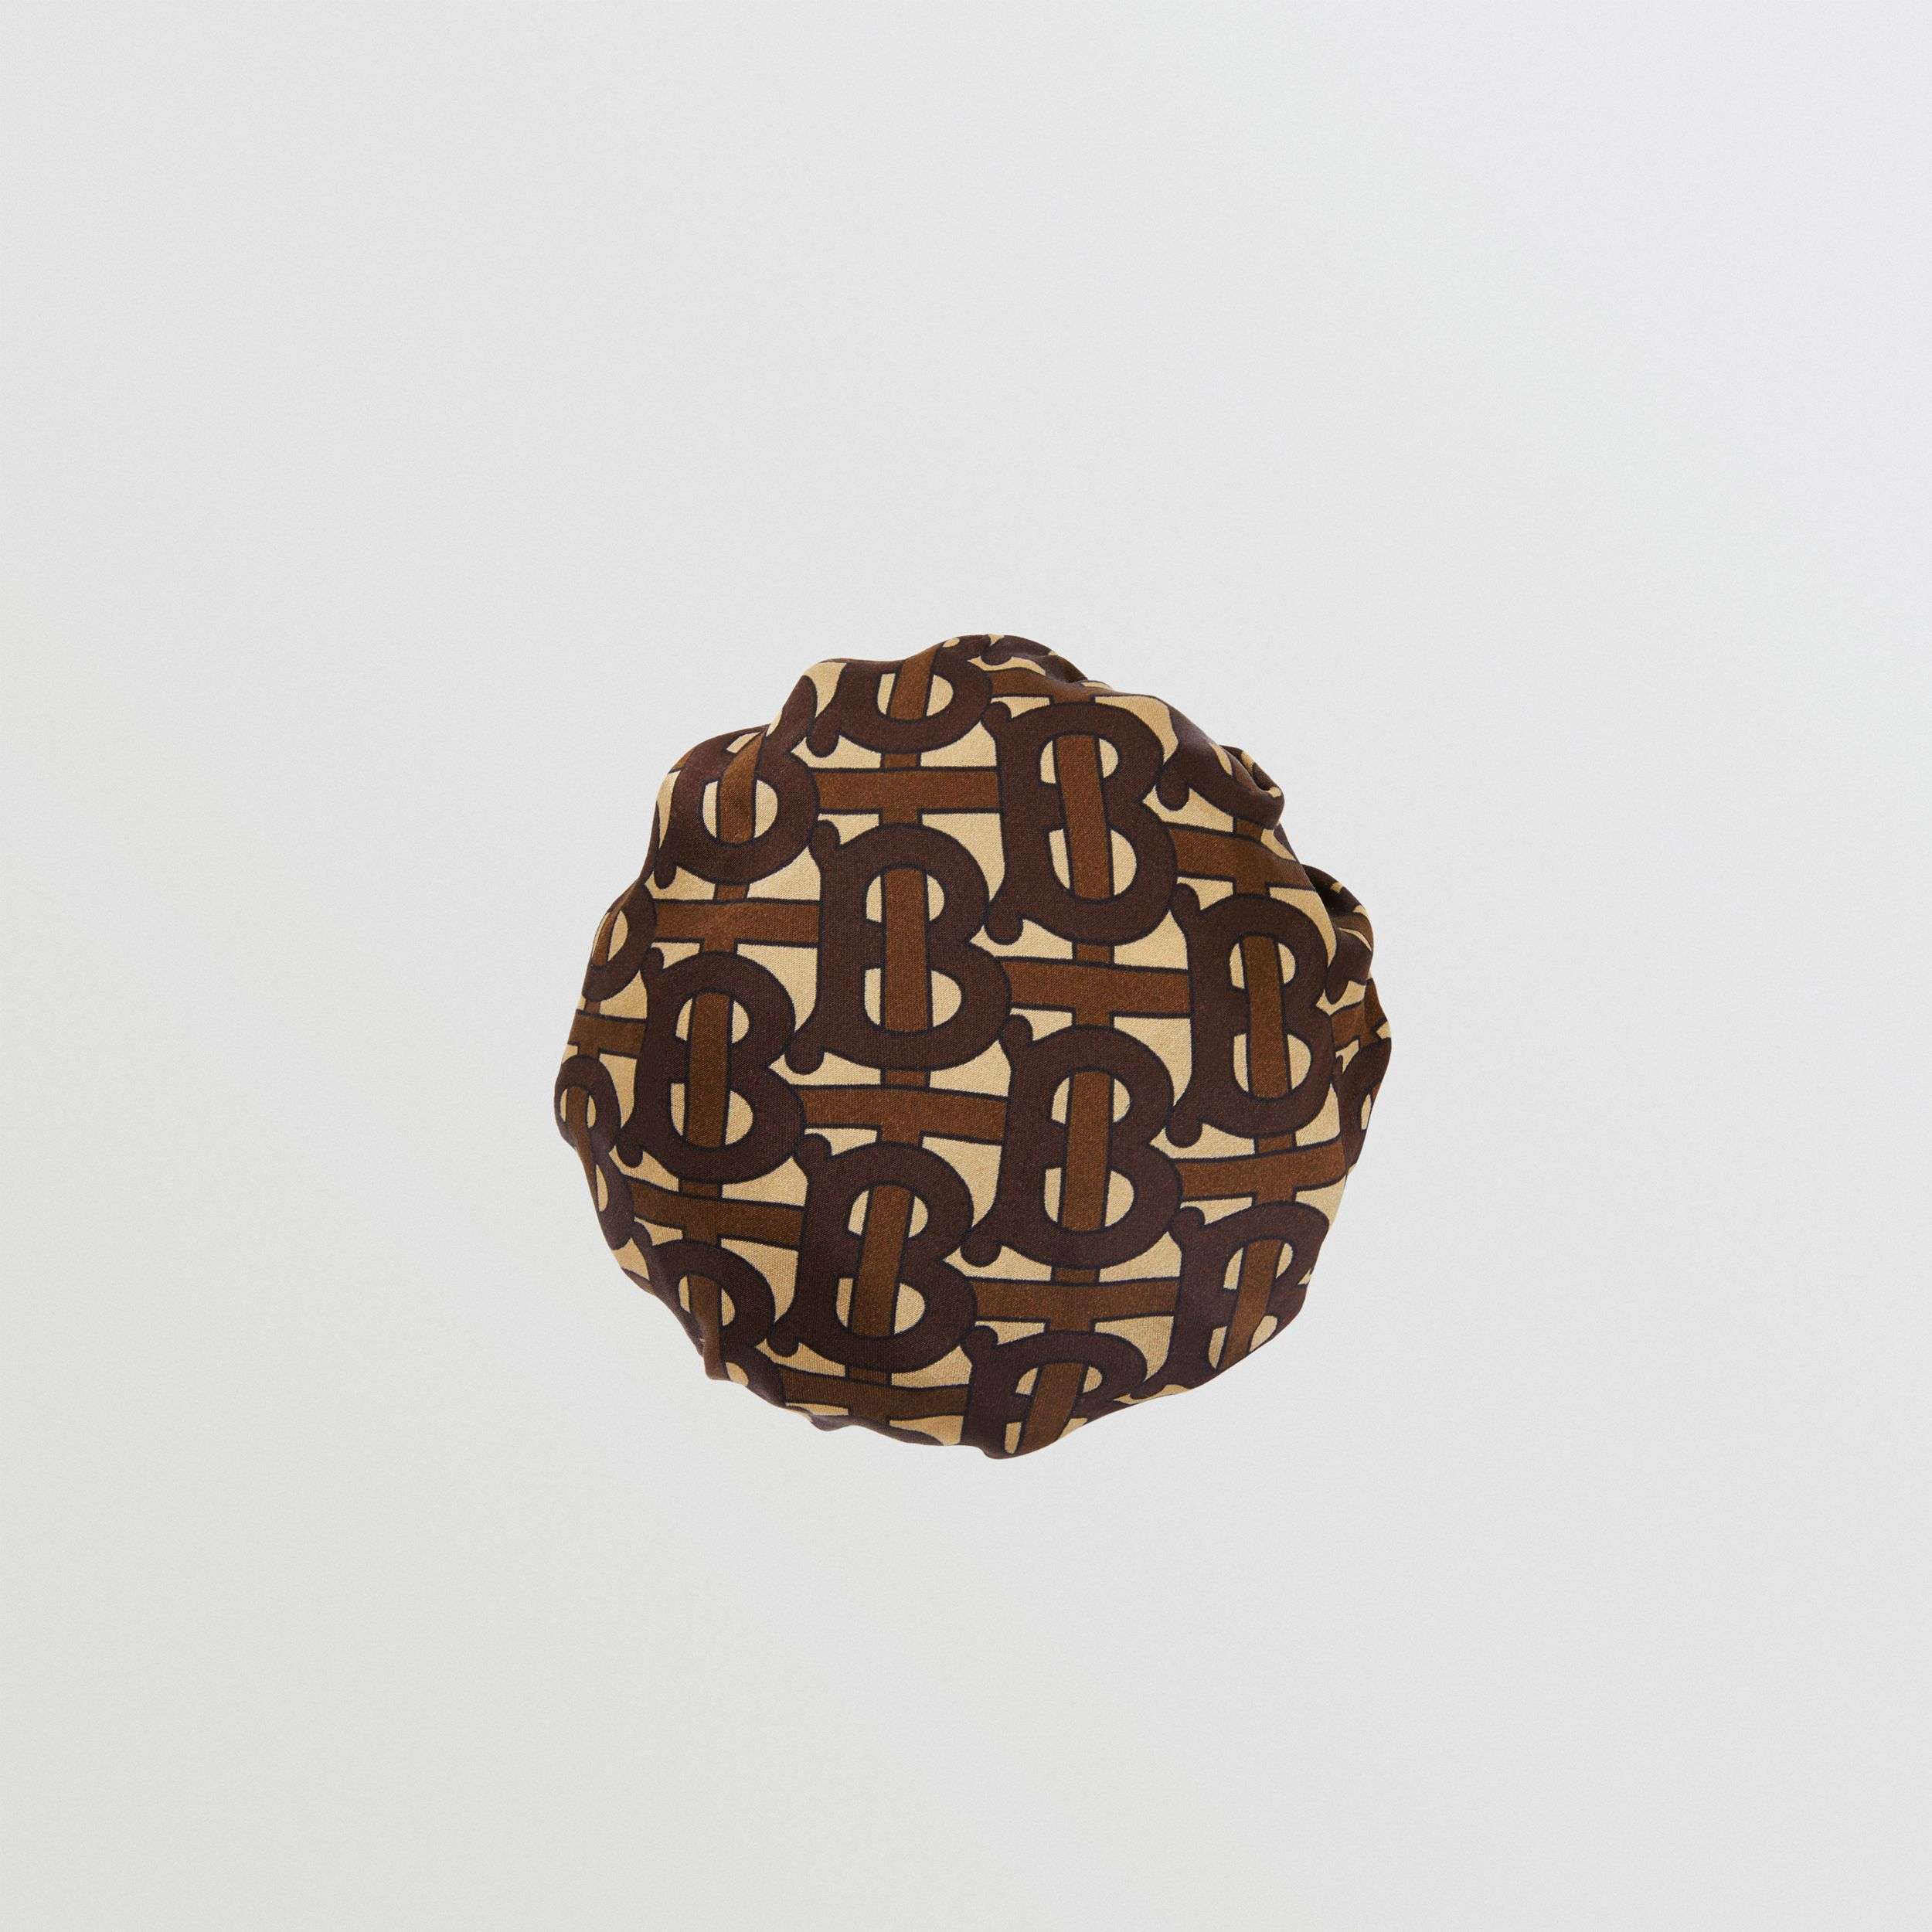 Monogram Print Silk Chignon Cover in Brown | Burberry - 1